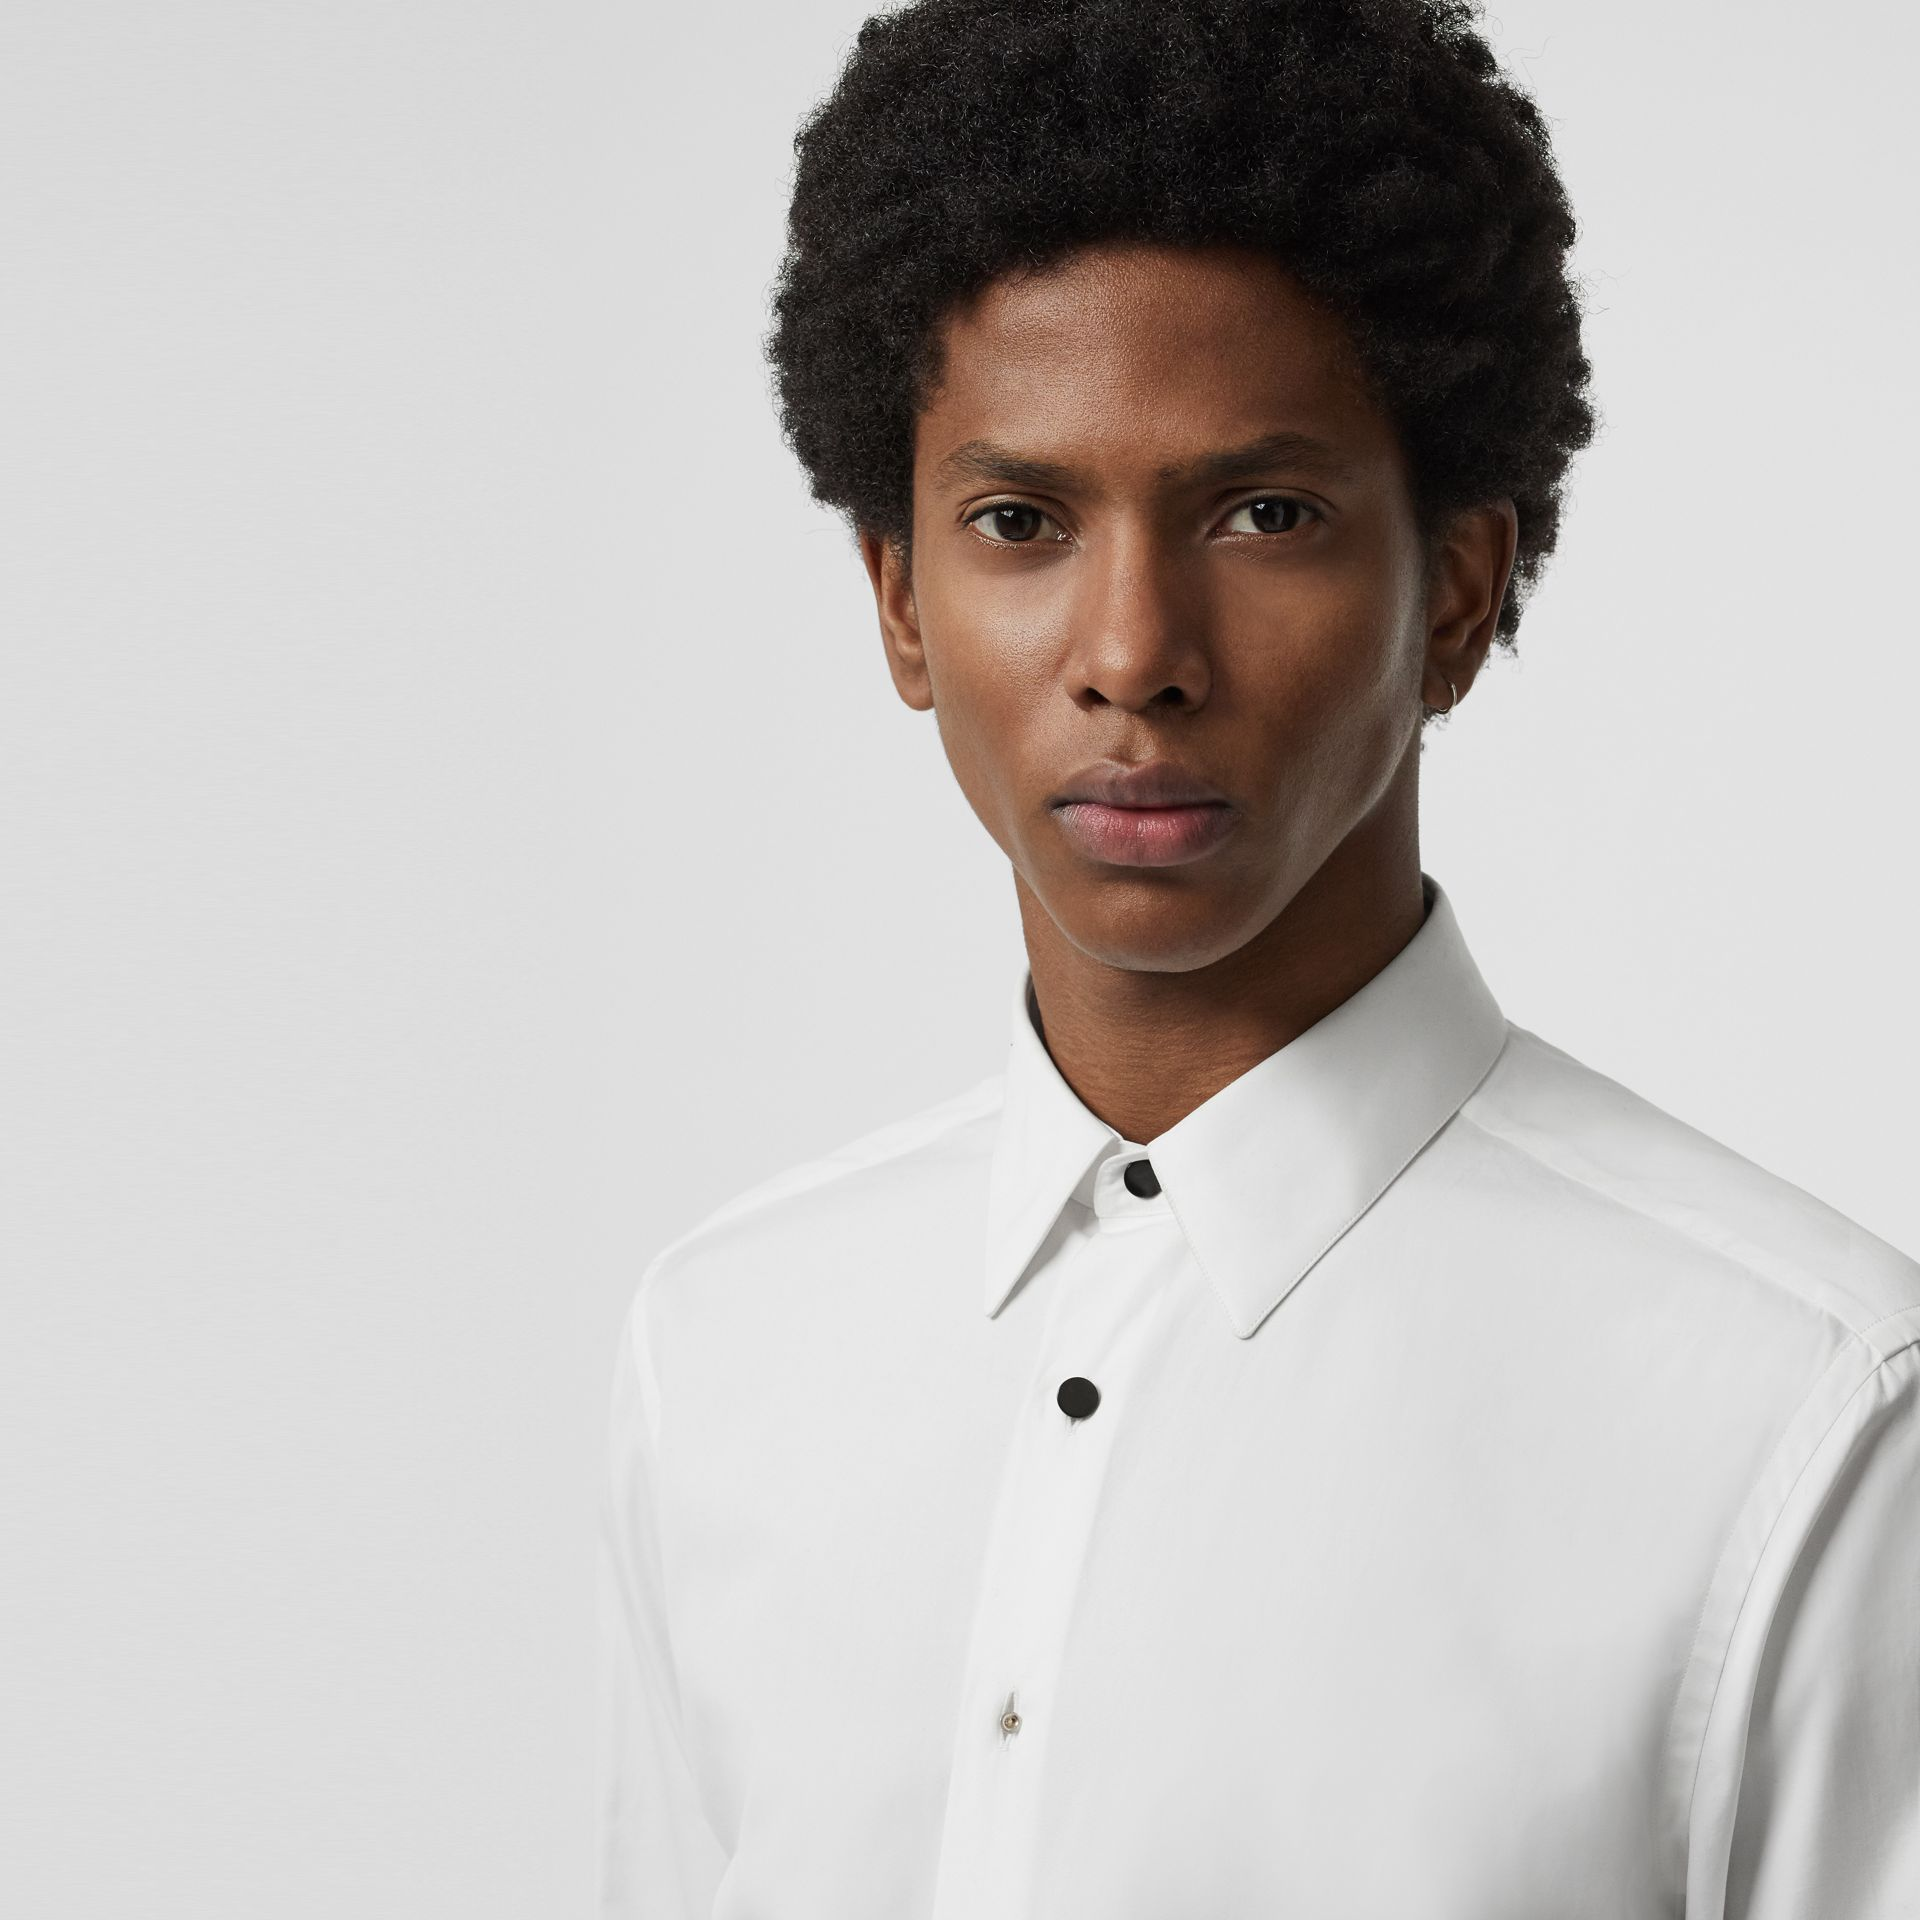 Classic Fit Cotton Poplin Dress Shirt in White - Men | Burberry United Kingdom - gallery image 1